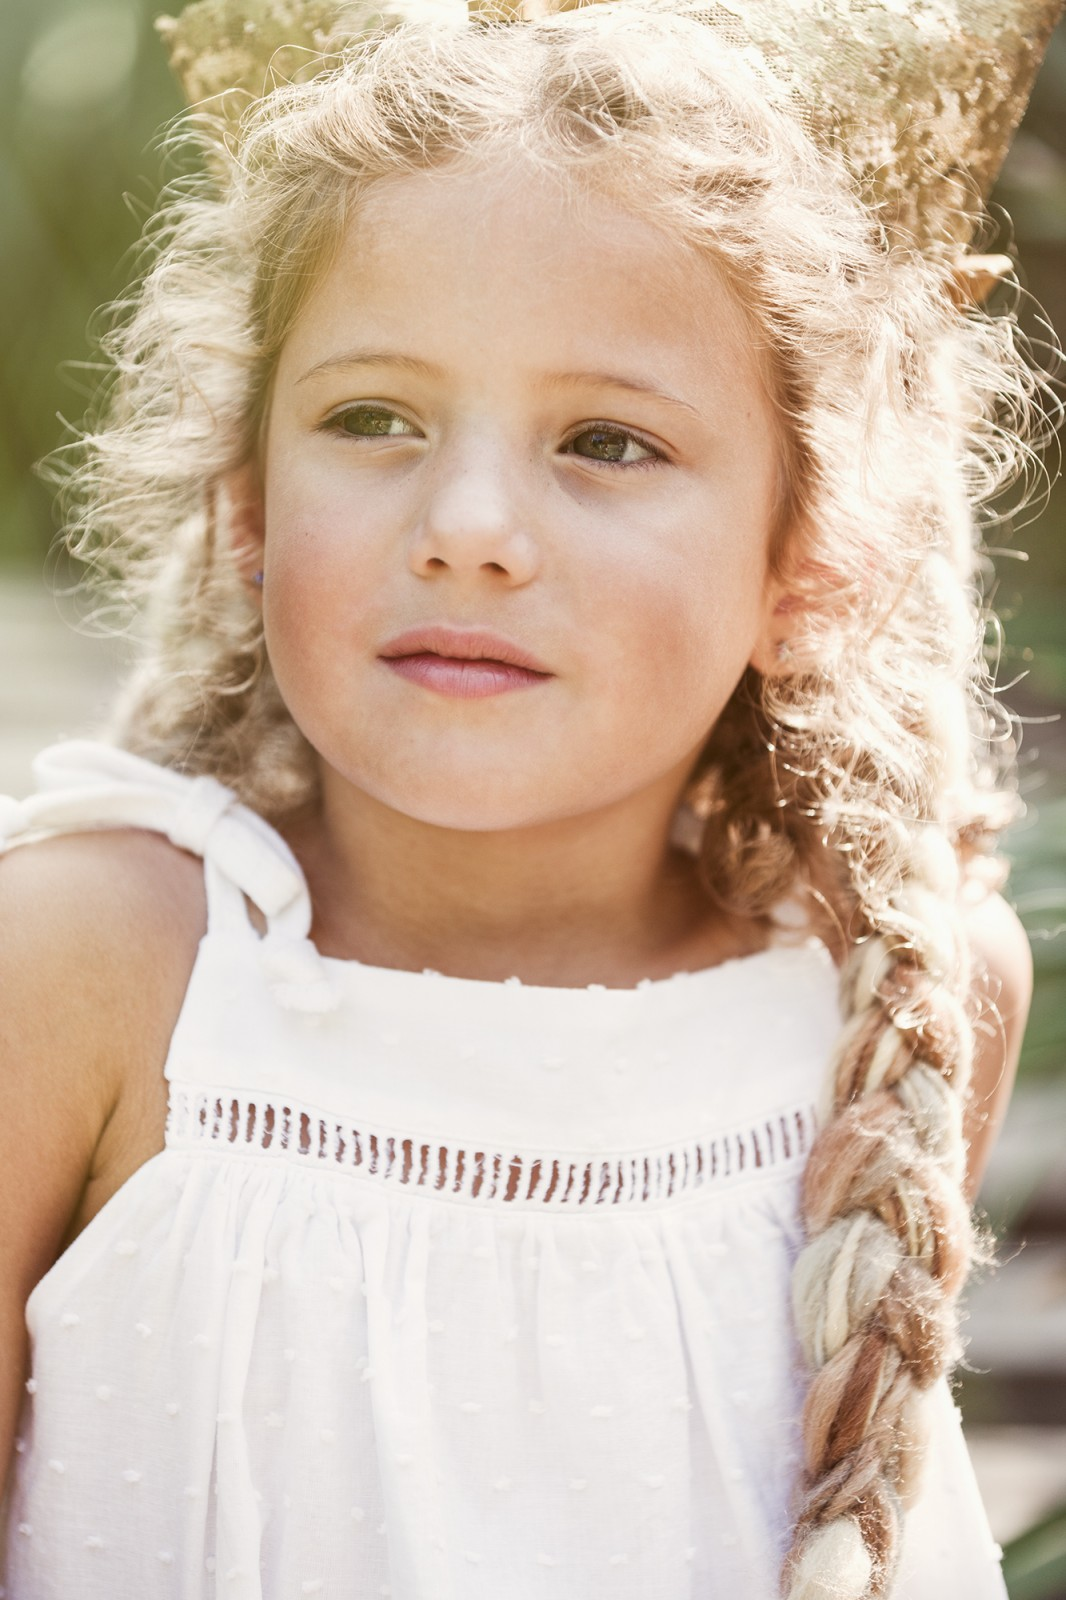 Sydney leading kids fashion photographer Michelle Young photographing kids for Samantha Sotos. Shot on location.